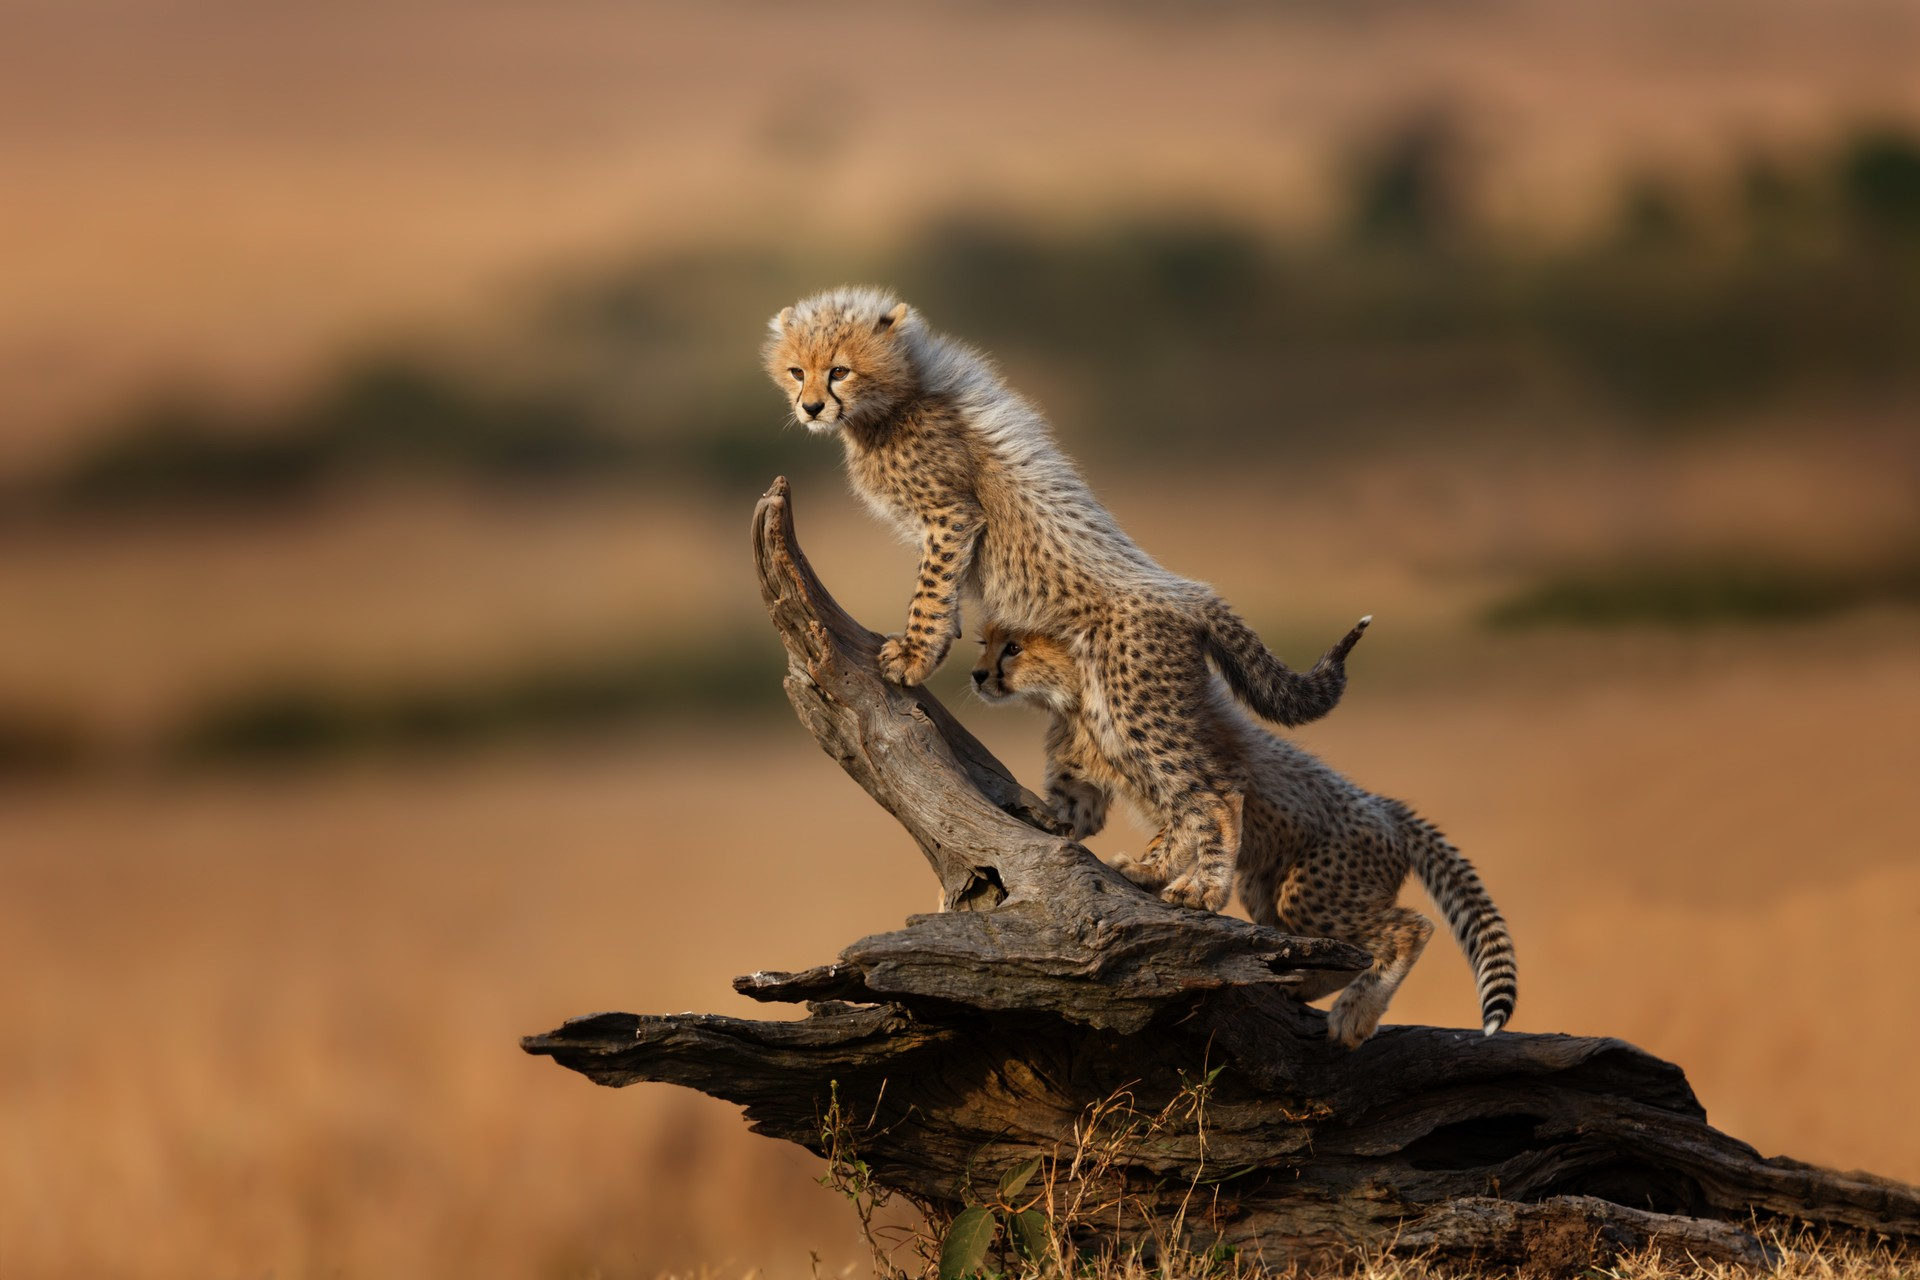 Cheetah cubs playing in Kenya